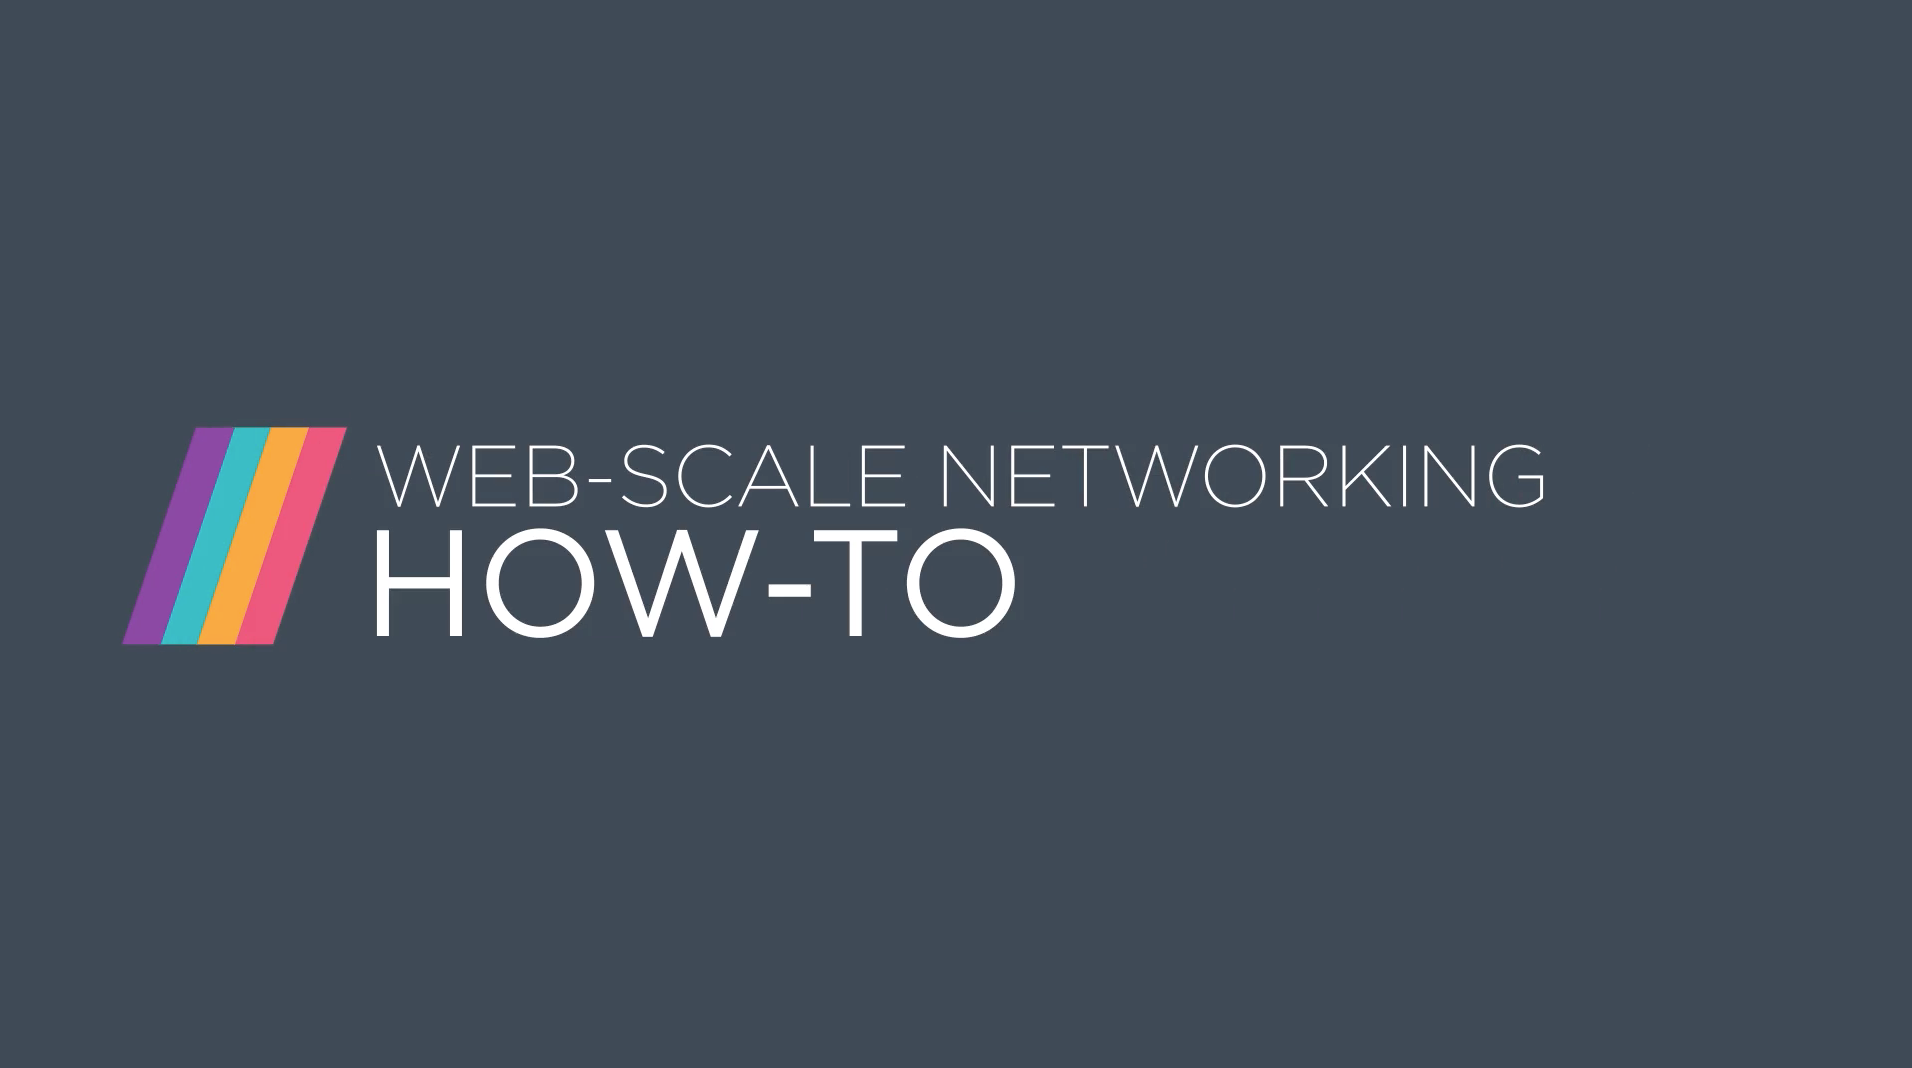 Getting started with open networking basics